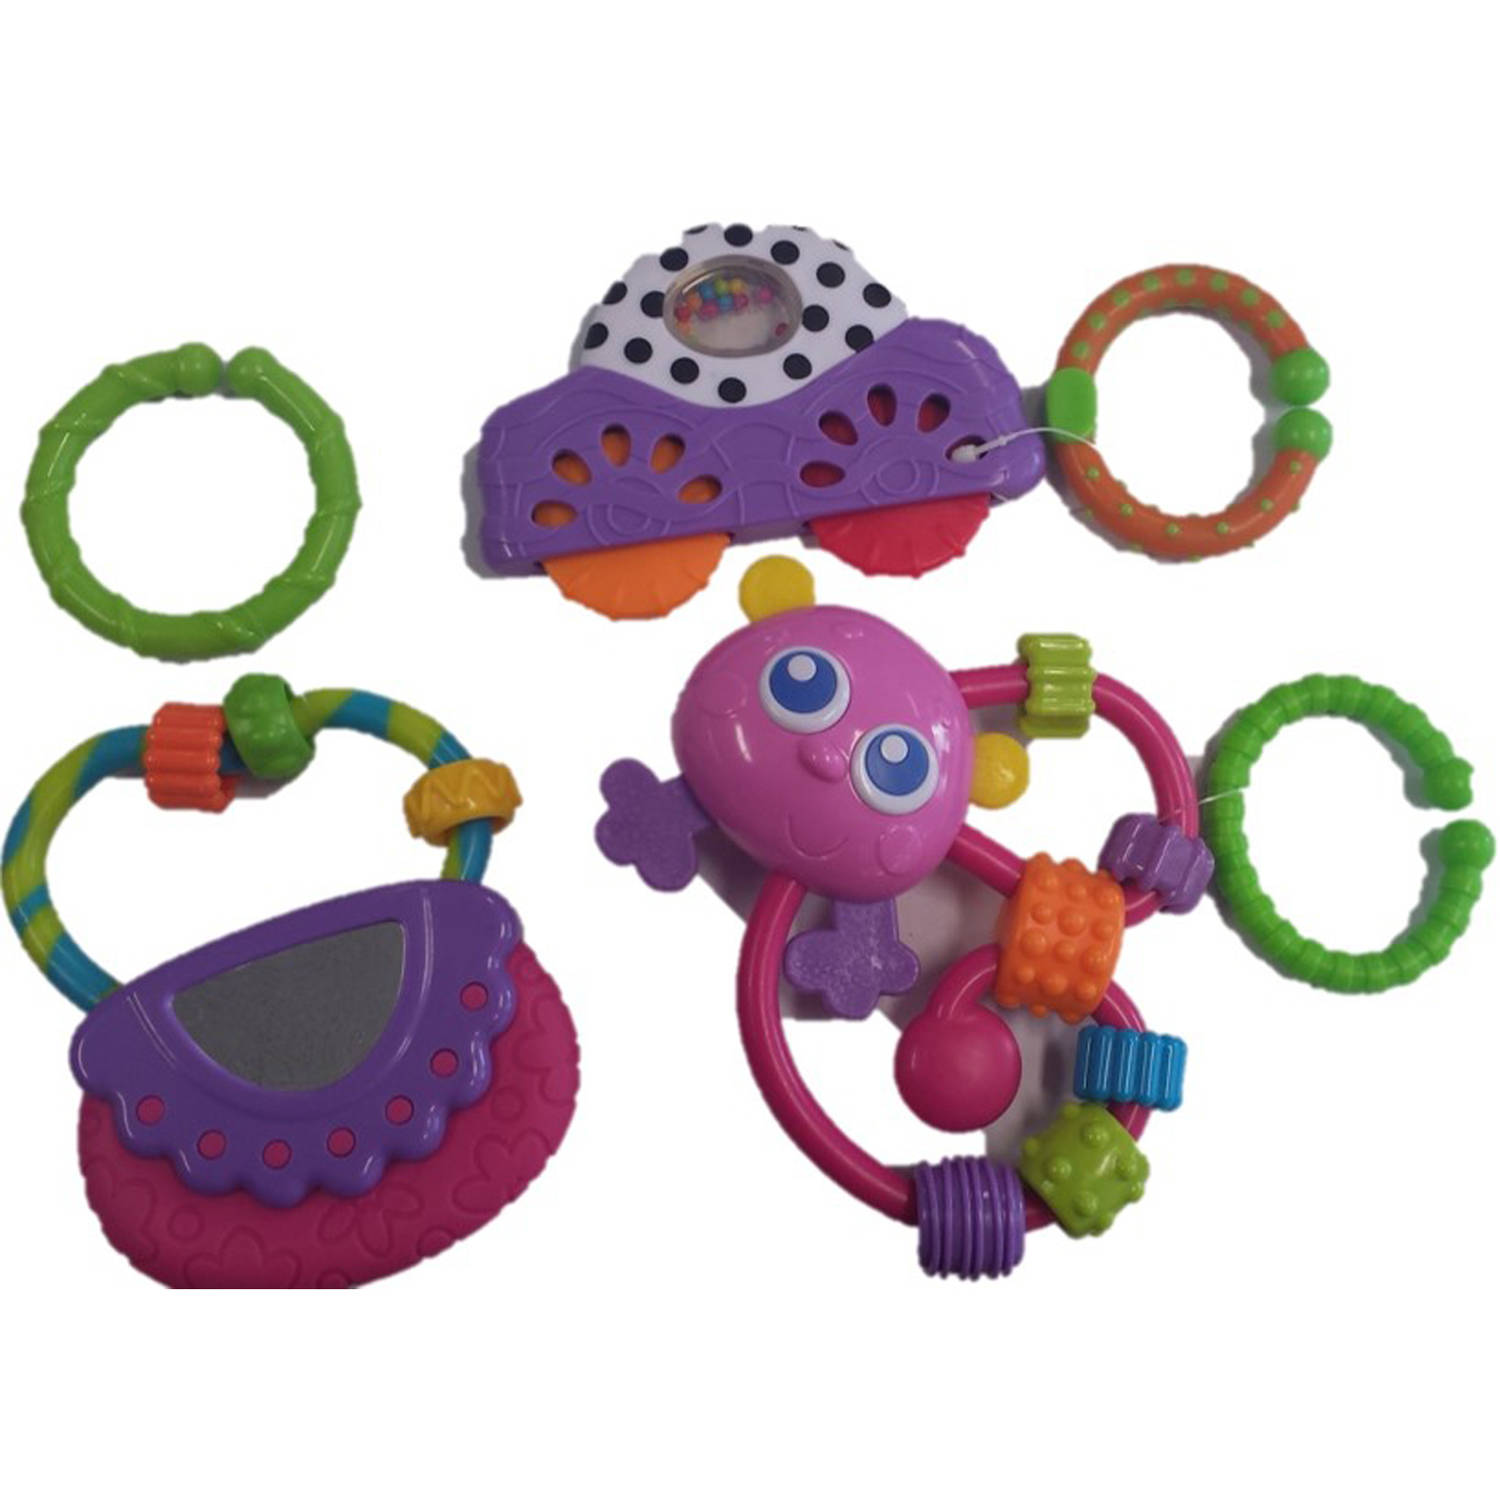 Playgro Go with Me Rattle Pack Girl, 3pk